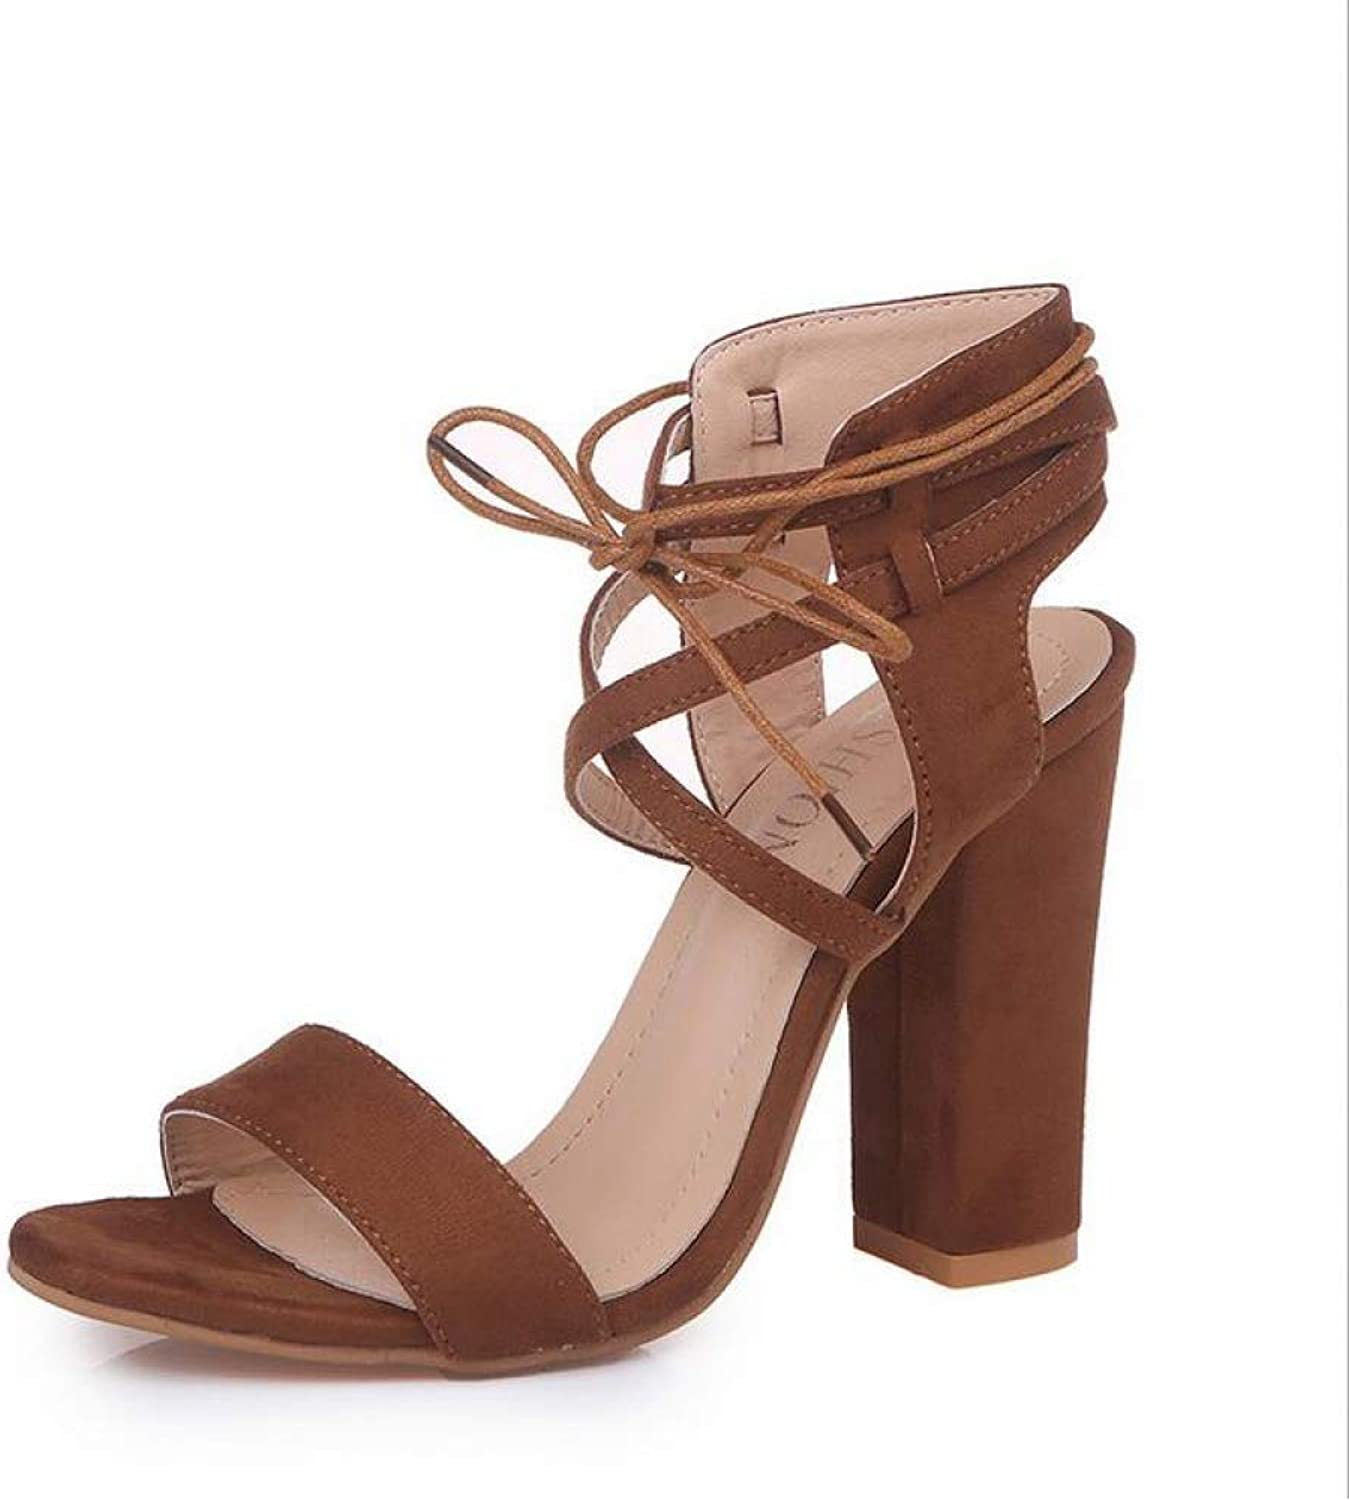 T-JULY Wedge Sandals for Women Summer Strap Square Chunky High Heels Wedding Party Ladies shoes